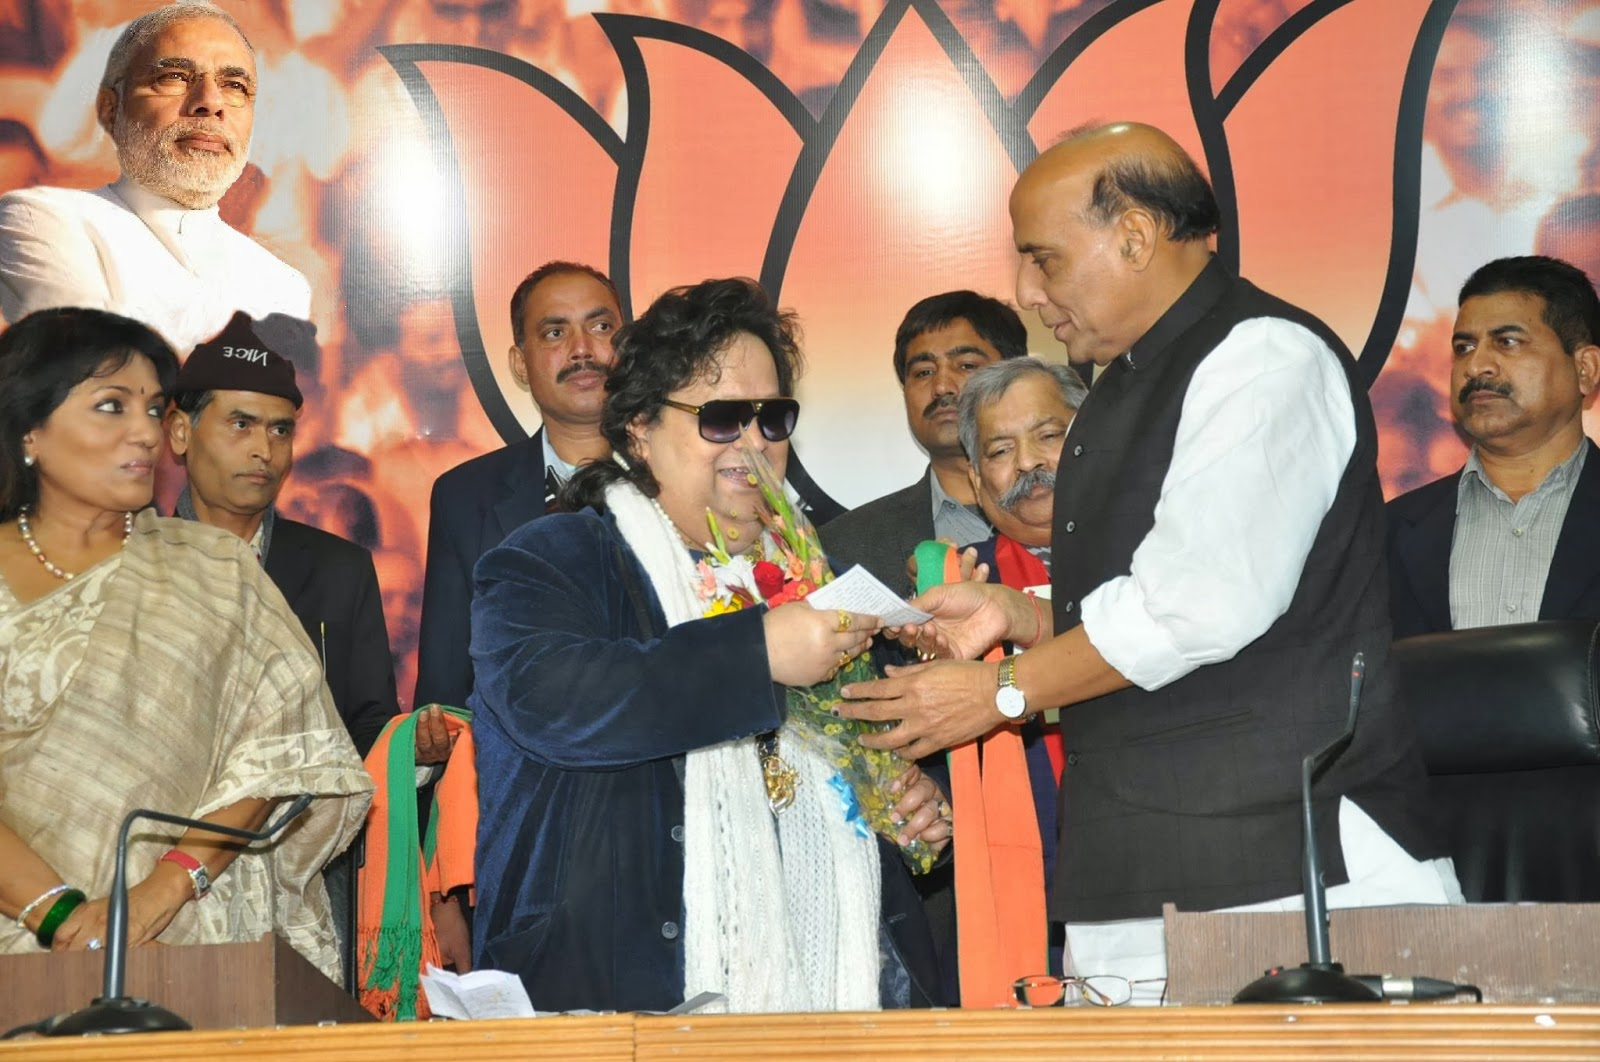 Will agitate against mamata banerjee for attacking our workers bjp the indian express - The Hindu Special Correspondent New Delhi 31 January 2014 Hindi Film Music Director Bappi Lahiri Joined The Bjp On Friday